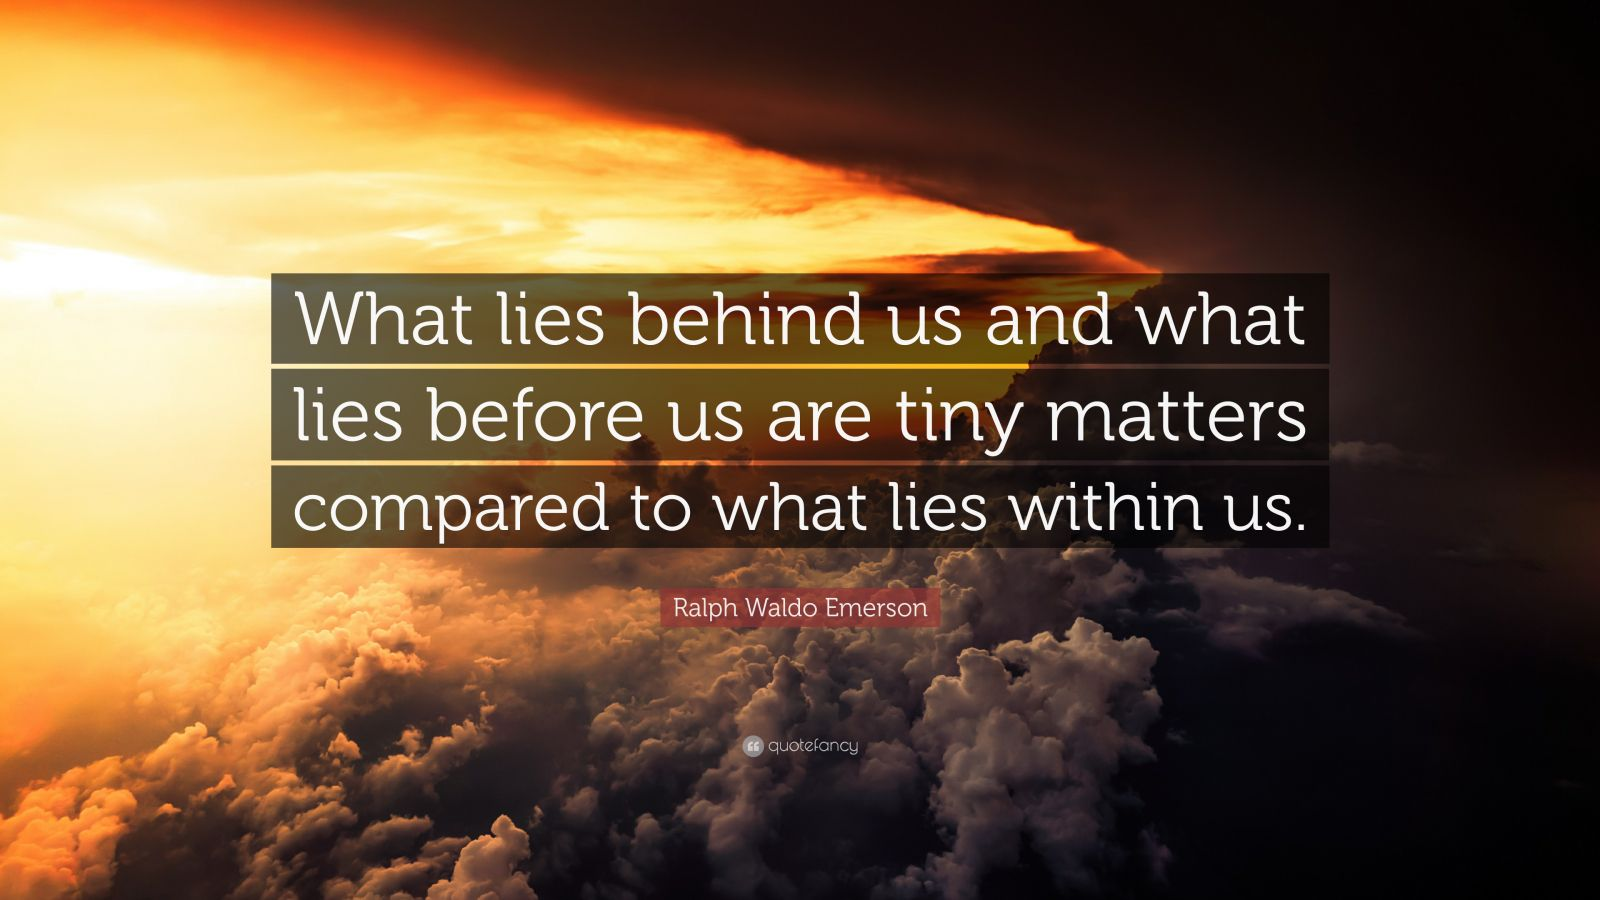 """Ralph Waldo Emerson Quote: """"What lies behind us and what lies before us are tiny matters compared to what lies within us."""""""